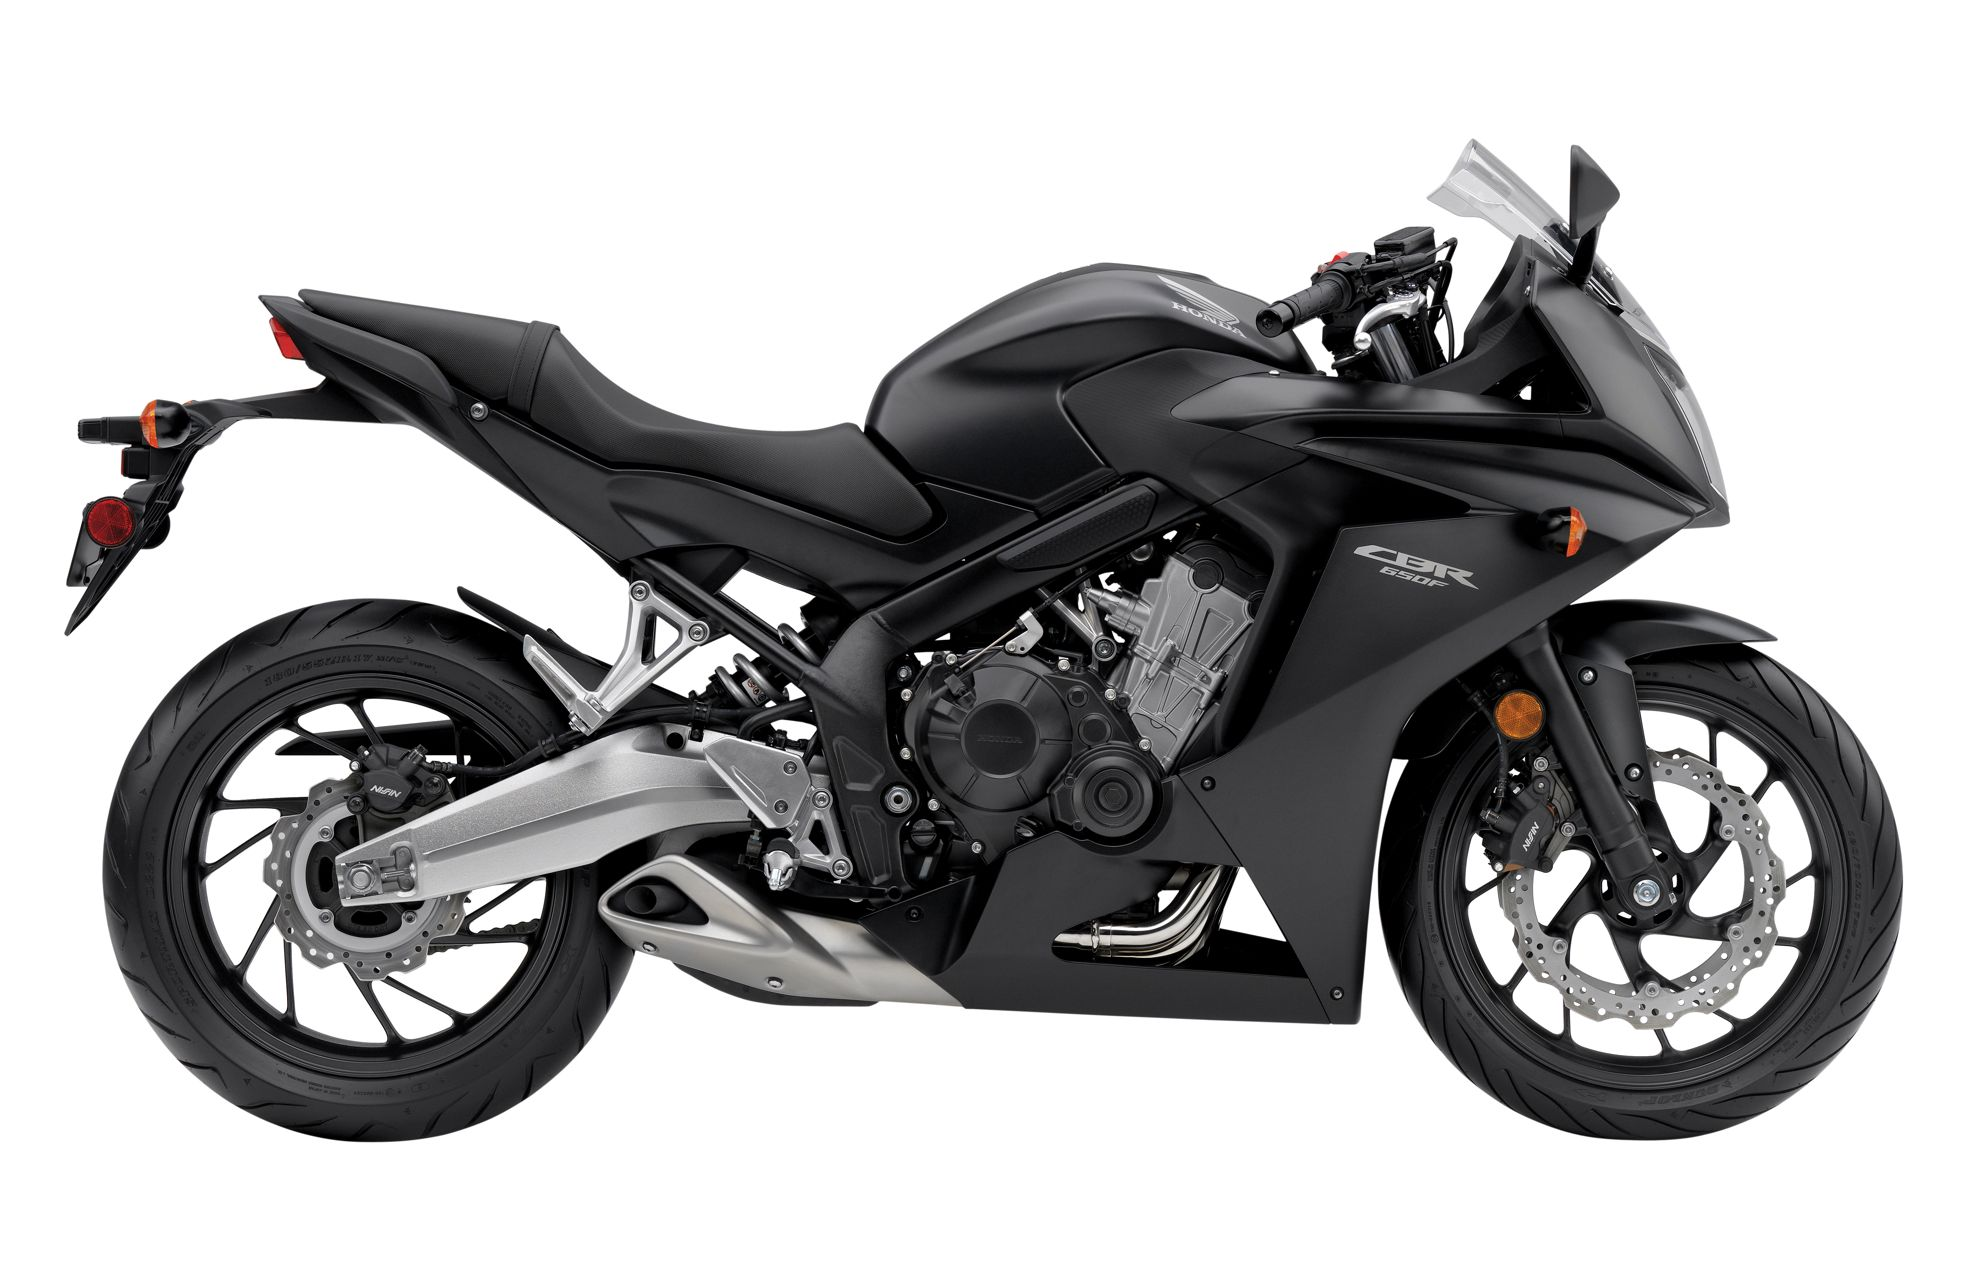 2014 Honda Cbr650f Features And Benefits